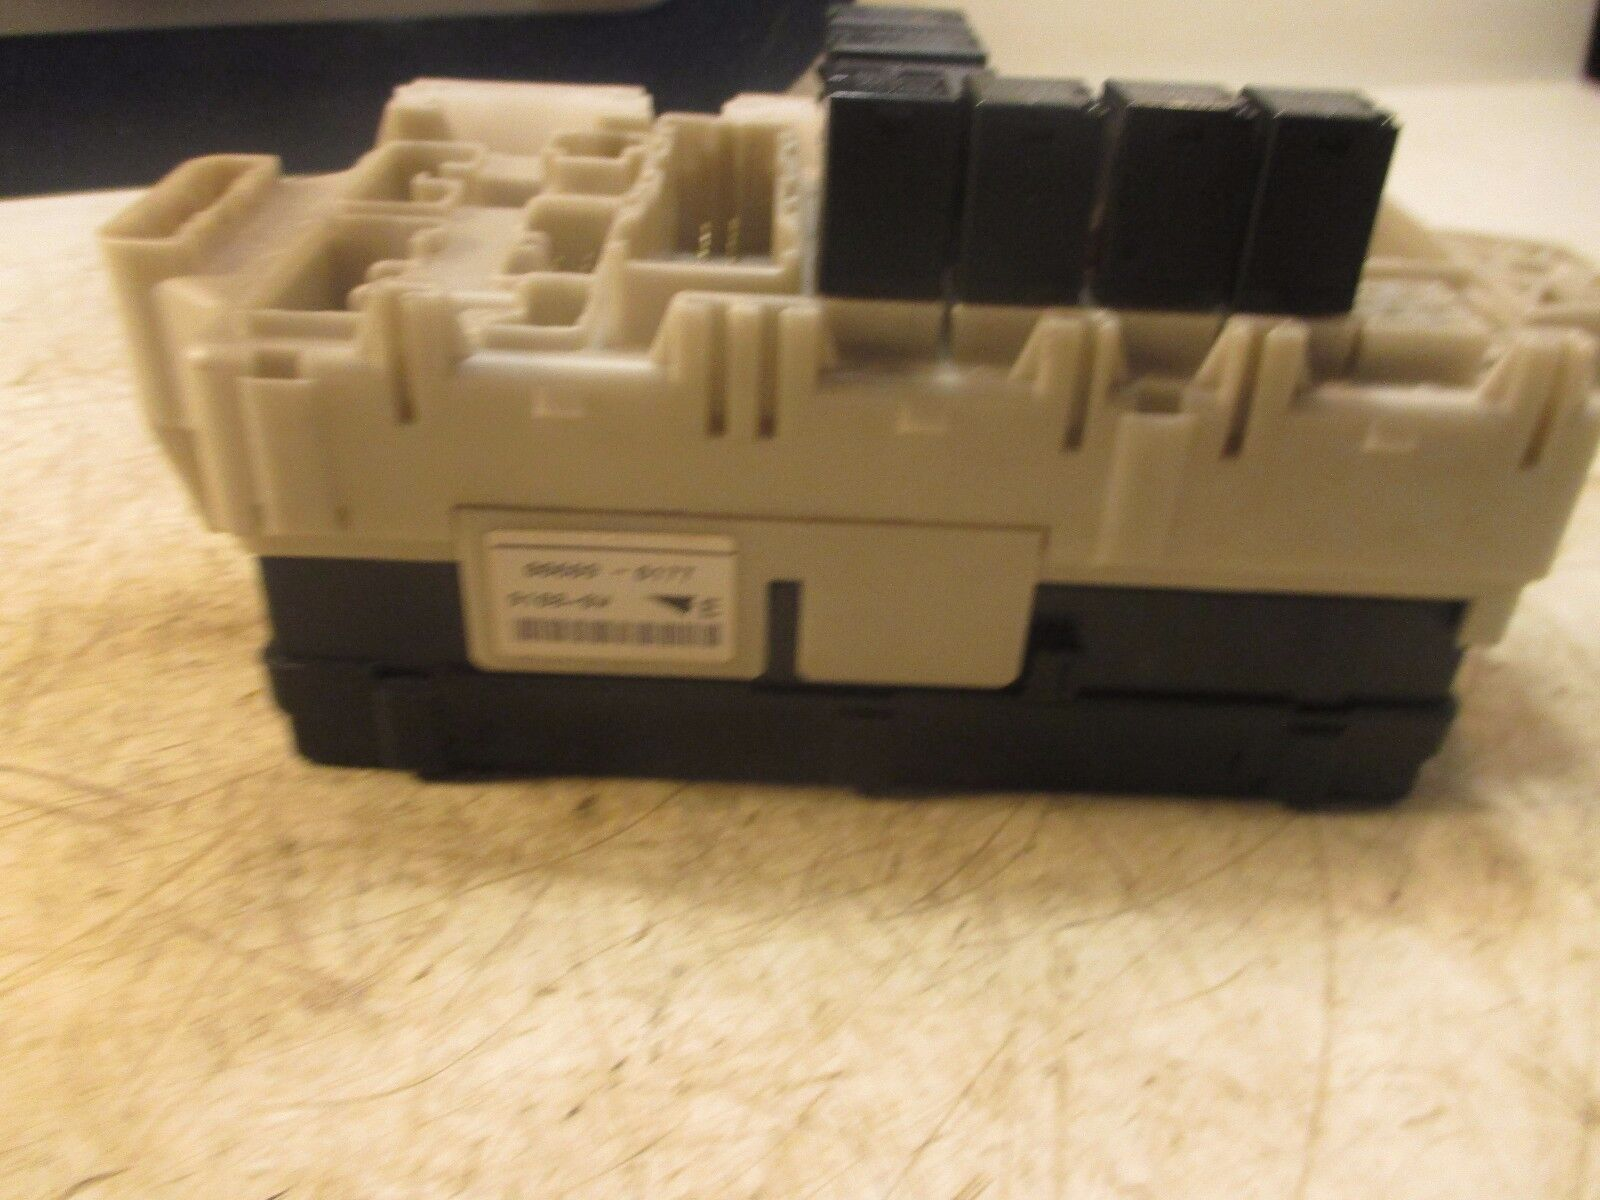 2011 Mercury Milan Fuse Box Mitsubishi Galant Detailed Wiring Diagrams Used Interior Parts For Sale 2013 Volkswagen Jetta